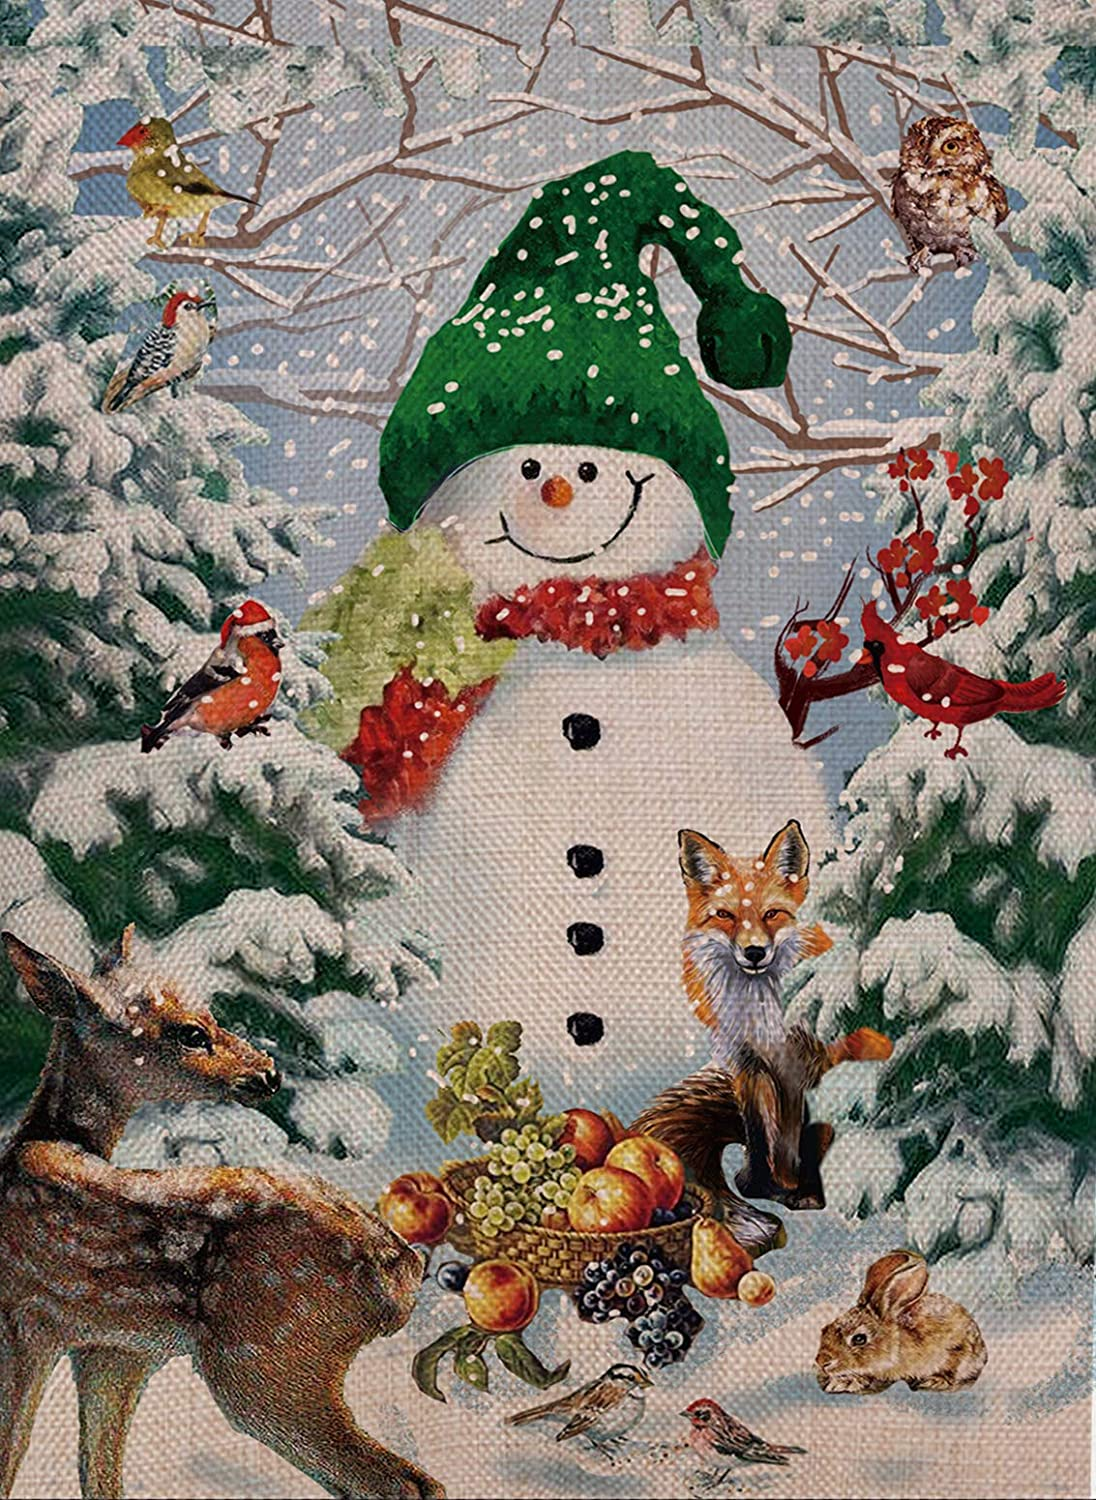 Selmad Home Decorative Merry Christmas Cardinal Garden Flag Winter Snowman Double Sided, Deer Owl House Yard Flag for Xmas, Outside Animals Yard Decorations, Vintage Seasonal Outdoor Flag 12 x 18